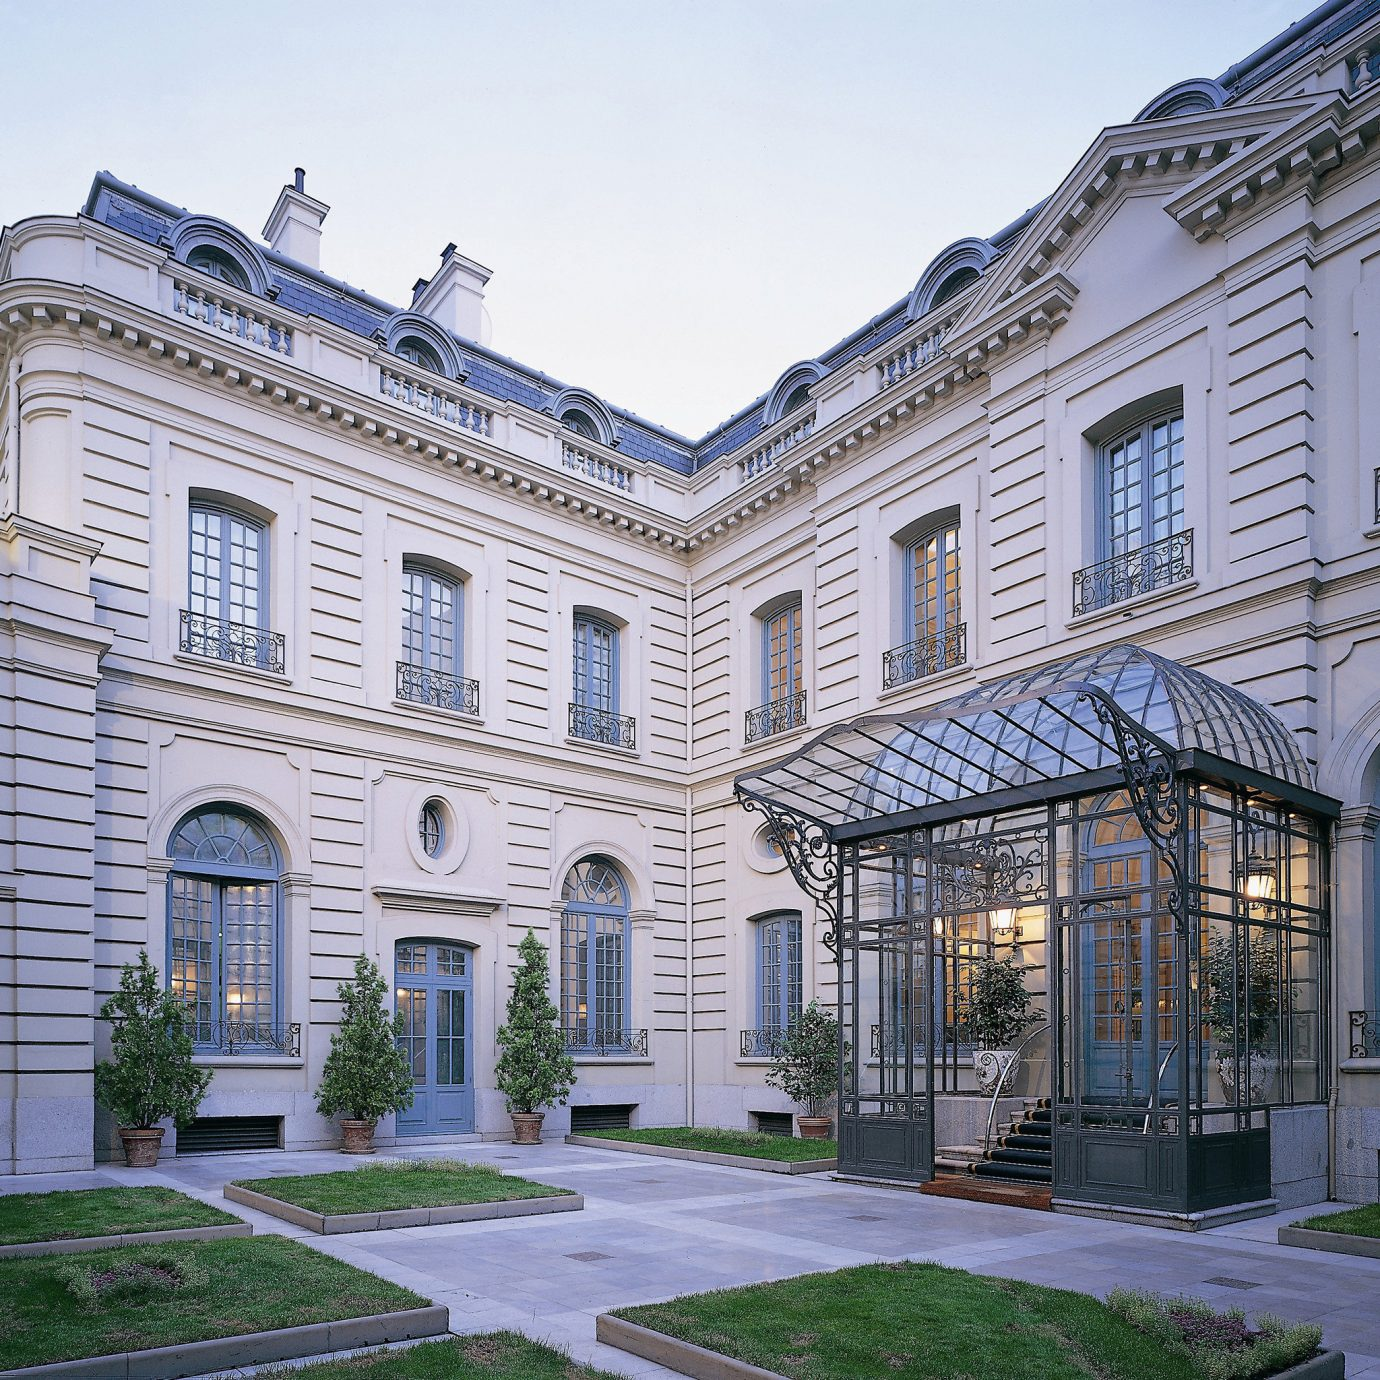 Architecture Buildings Elegant Exterior building sky property house stone neighbourhood home residential area mansion Courtyard old palace condominium orangery government building